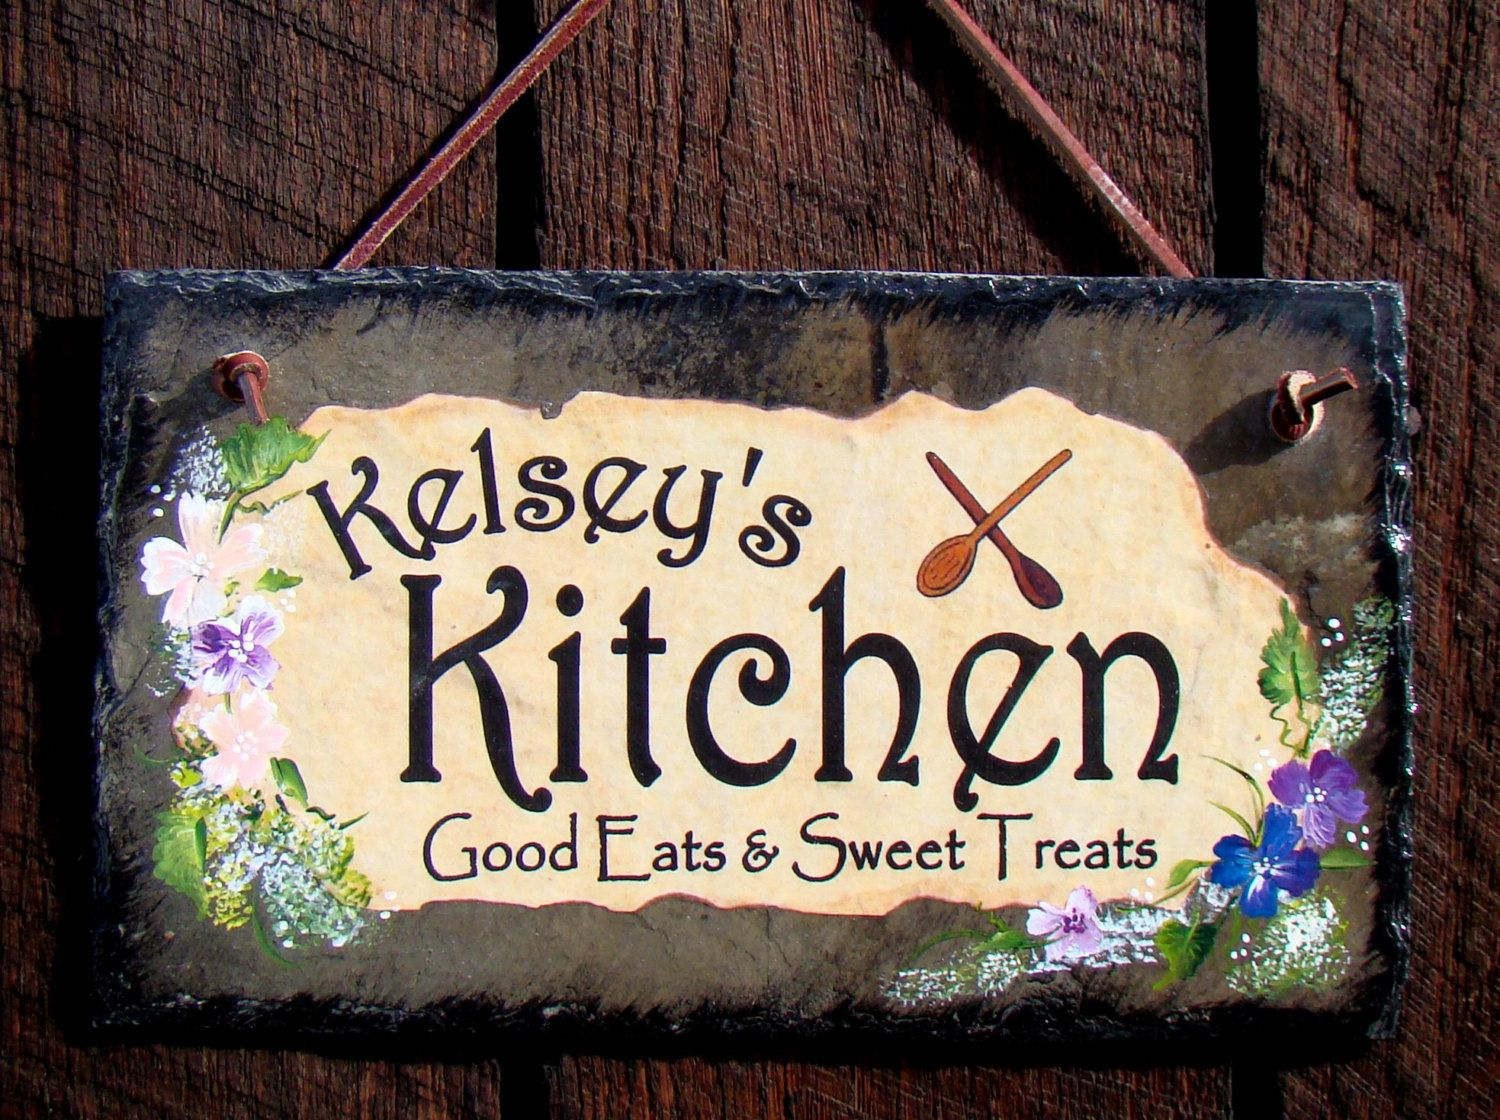 Custom Personalized Kitchen Sign Rustic Slate With Hand Painted Flowers  Design On The Side Primitive Shabby Chic So Cute And Unique